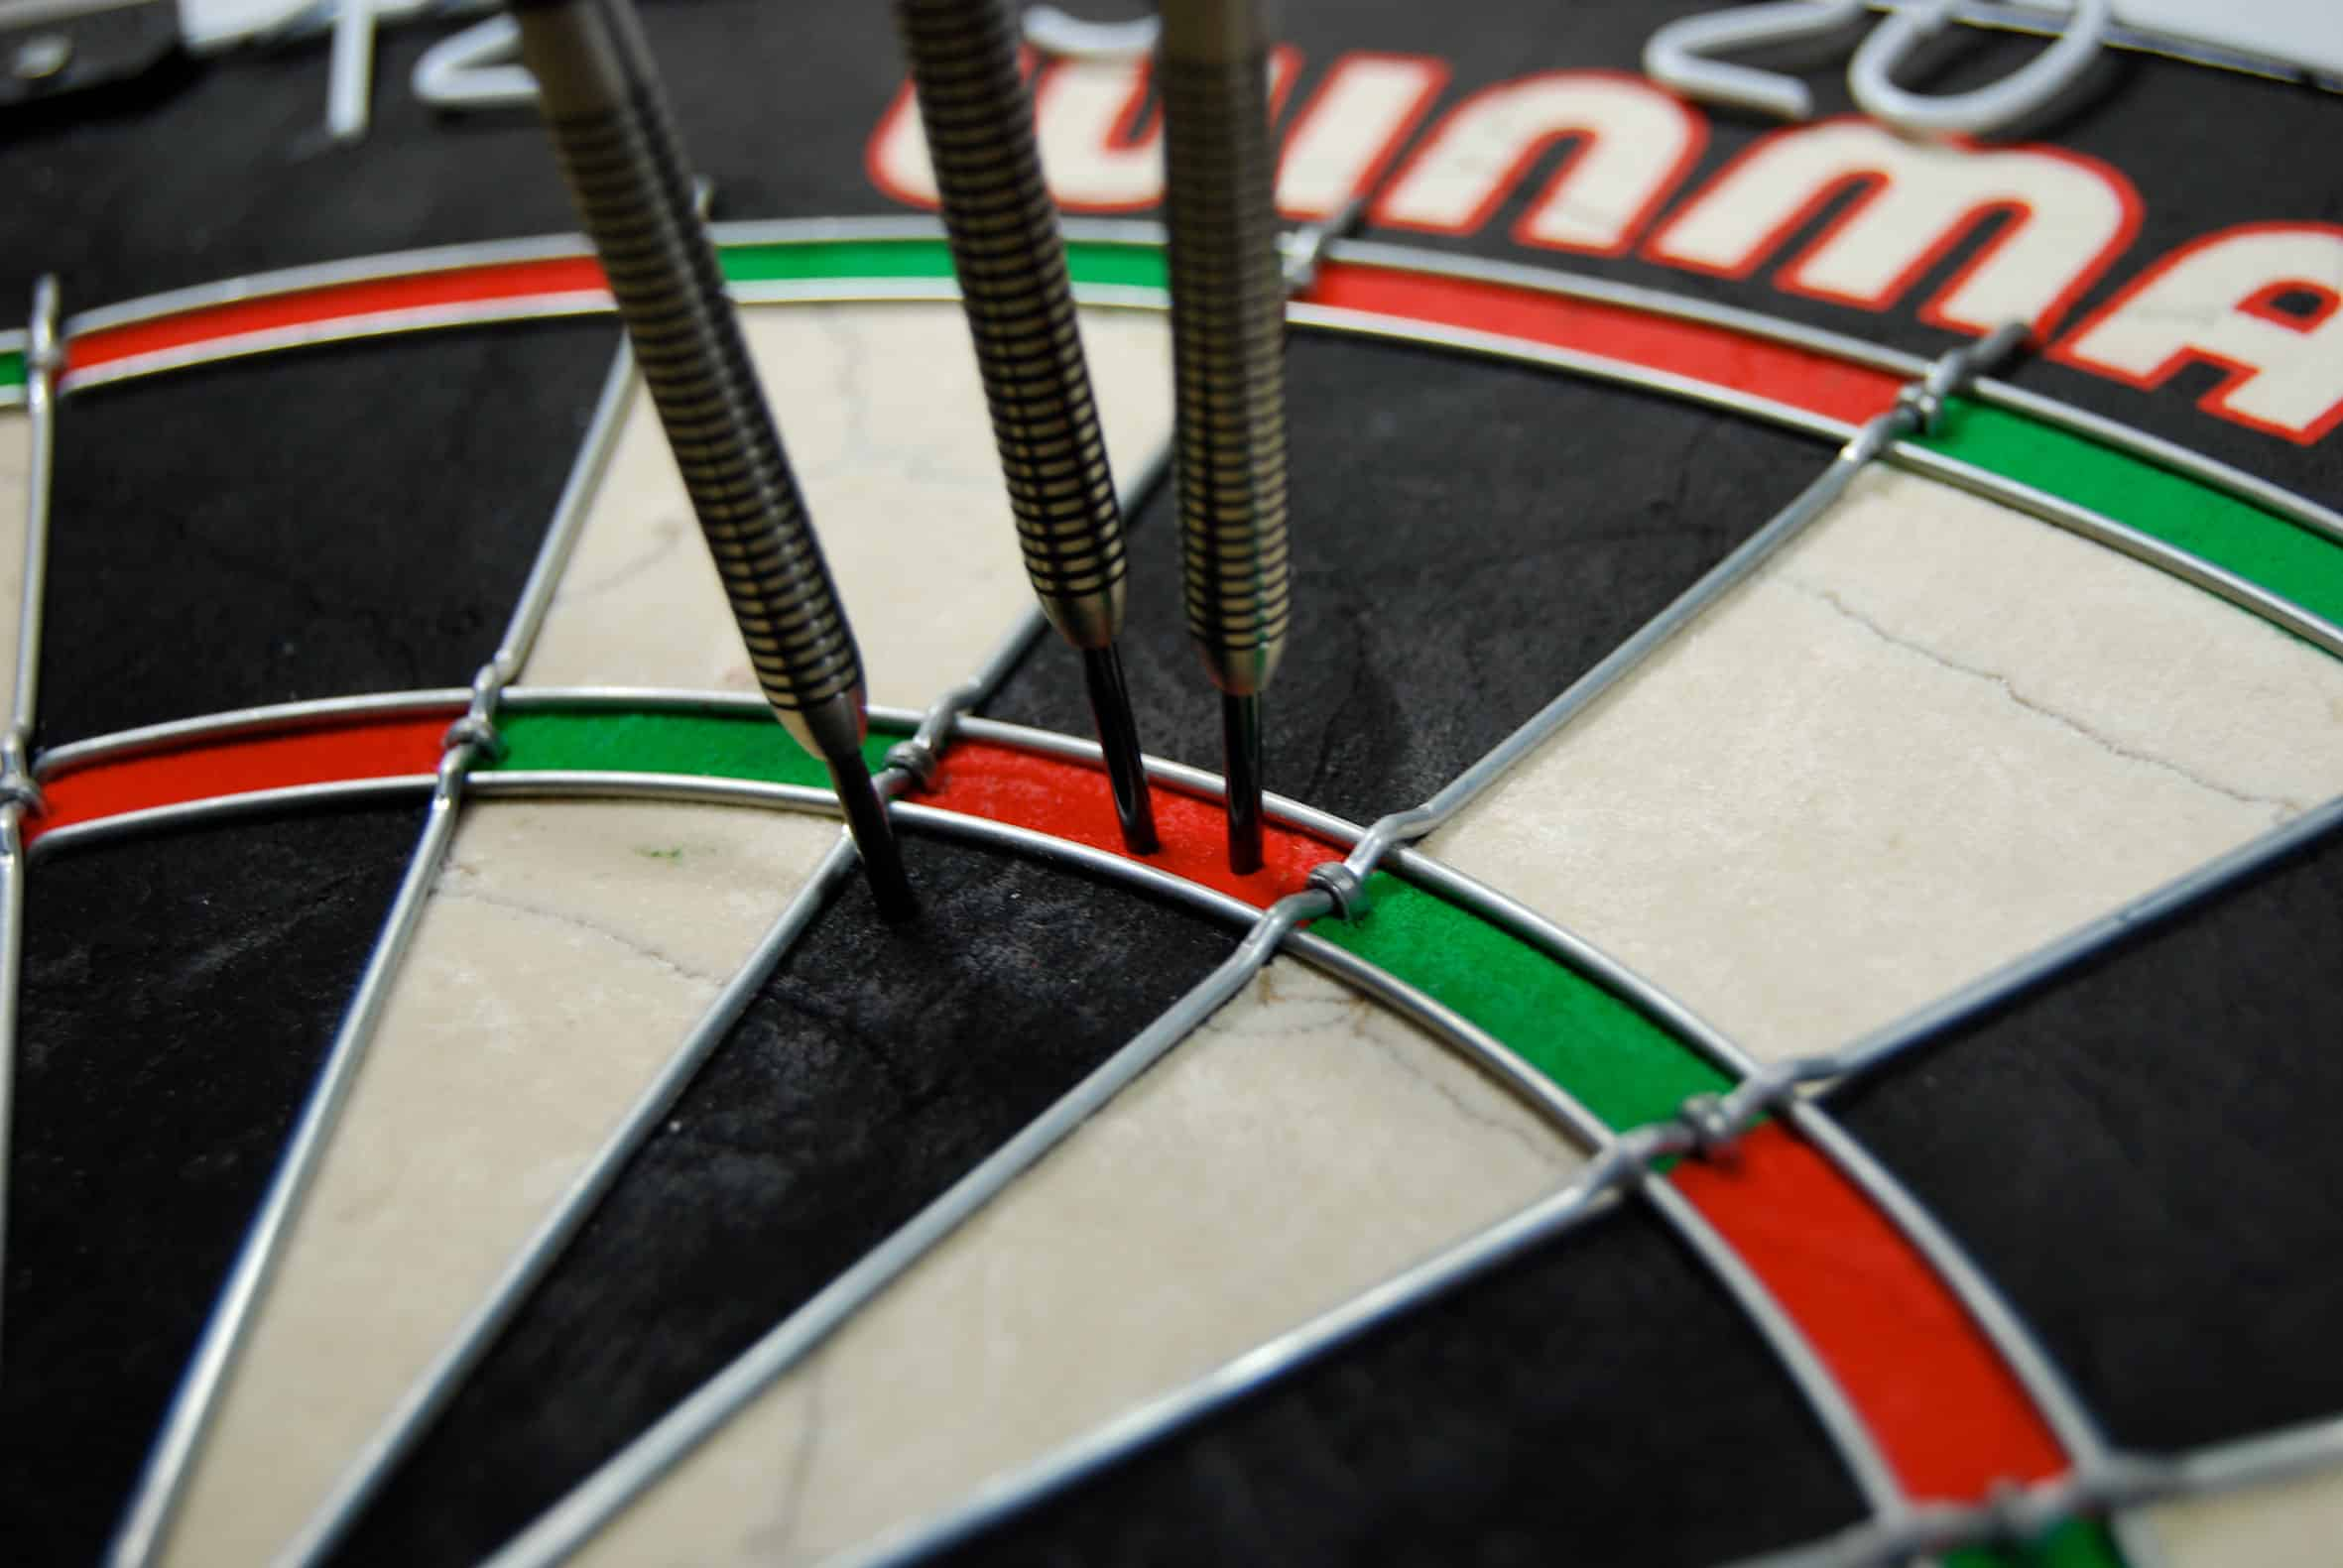 What makes darts such a unique sport to bet on?